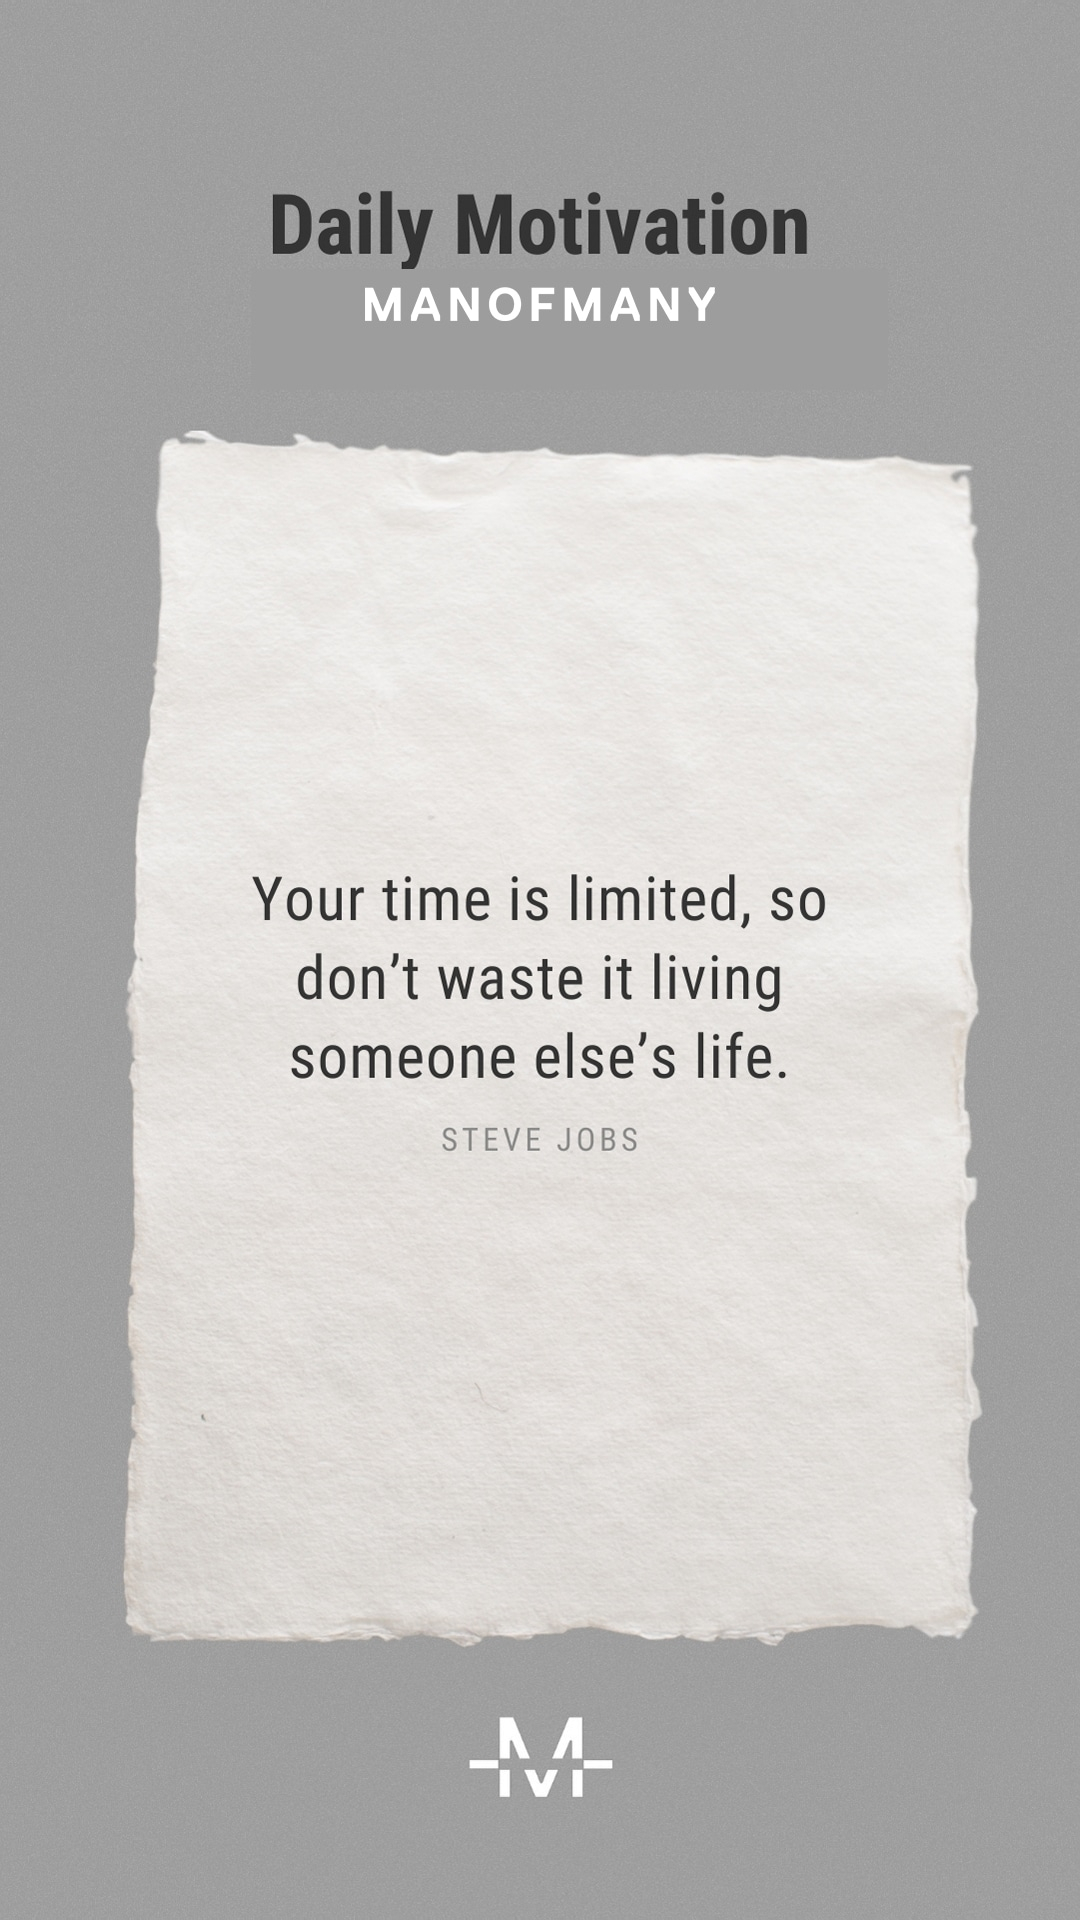 Your time is limited, so don't waste it living someone else's life. –Steve Jobs quote